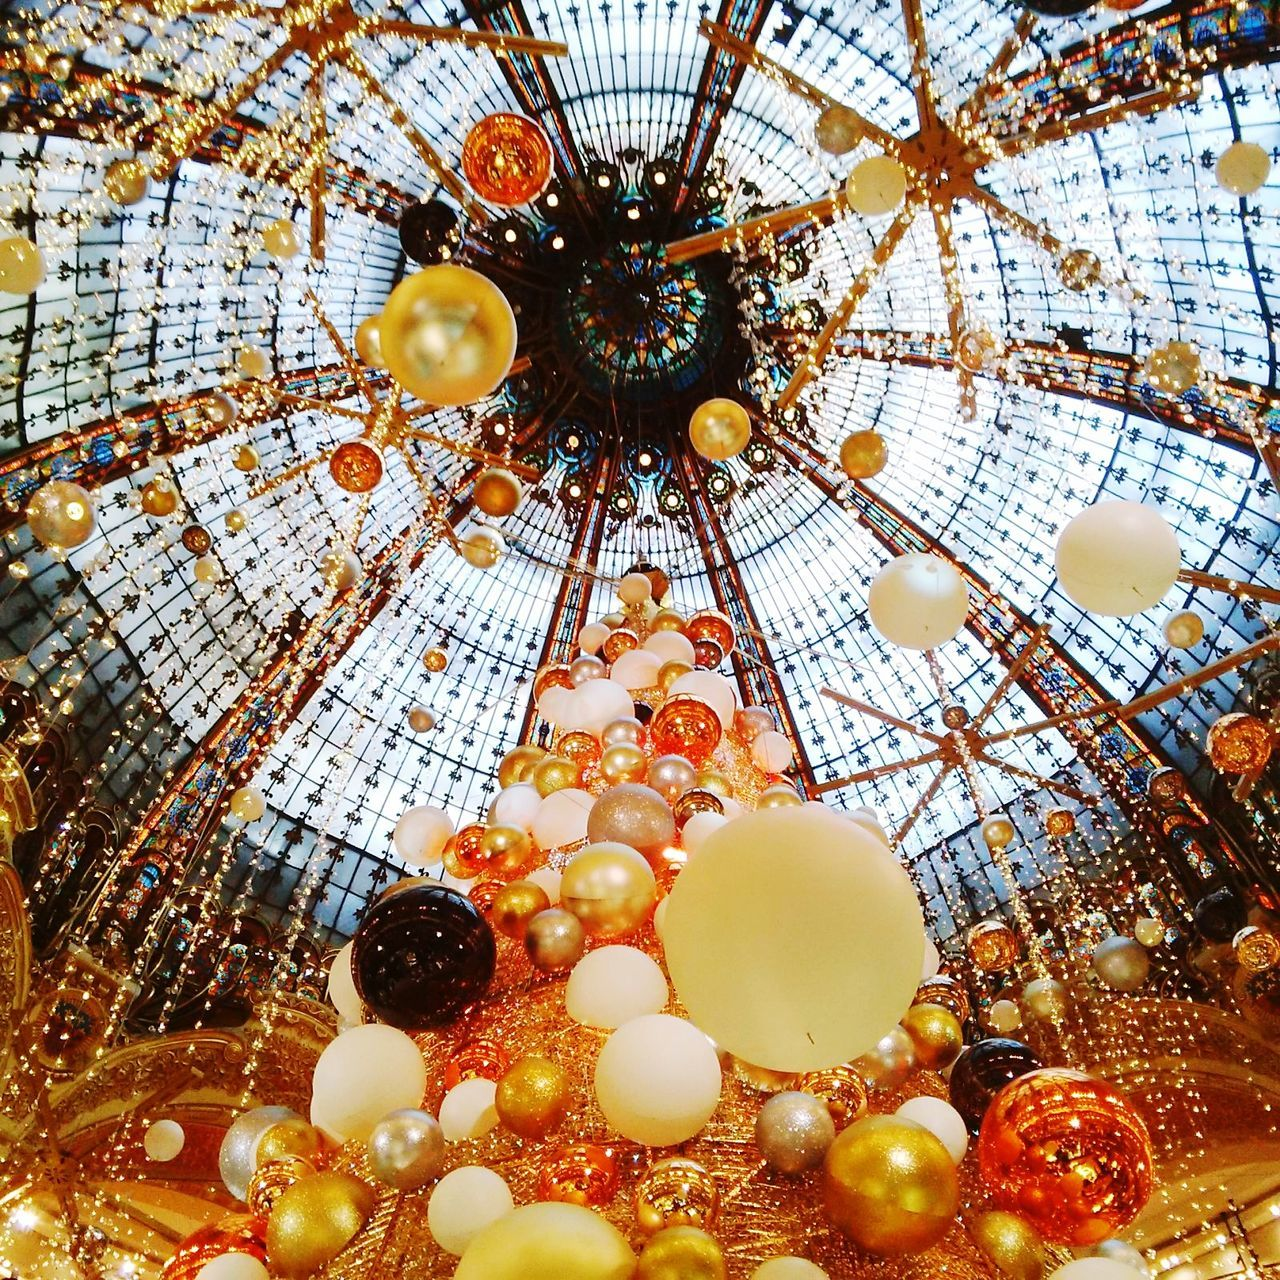 Christmas Lights Christmas Decoration Christmastime Christmas Around The World Christmas Tree Ceiling Indoors  Hanging No People Day Paris Christmas In Paris Christmas Decorations Low Angle View Close-up Holiday - Event Event Multi Colored Travel European City Love Christmas